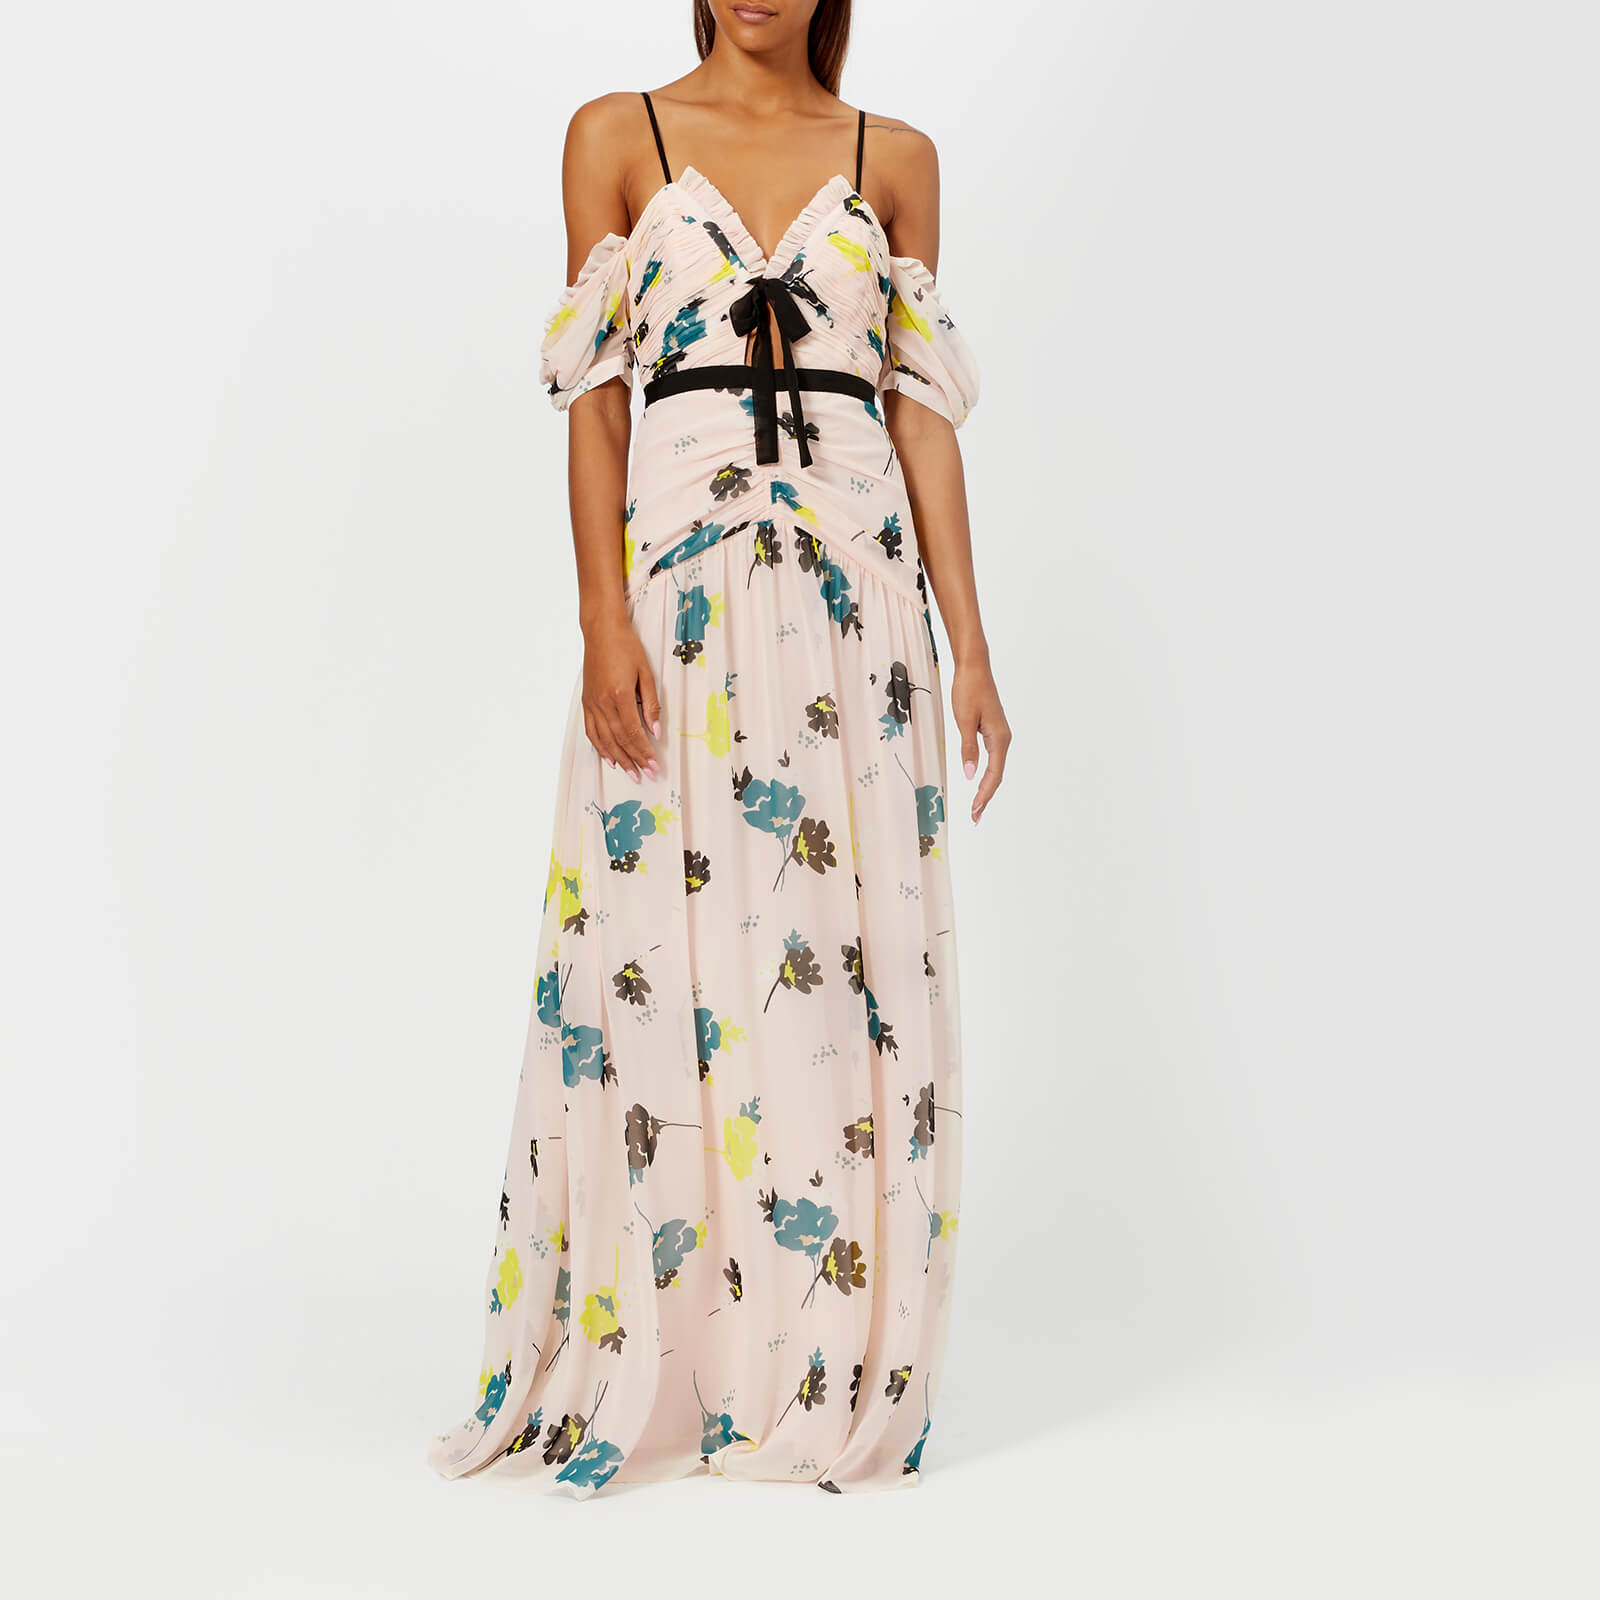 fab06a1ba94b6 Self-Portrait Women's Graphic Floral Print Maxi Dress - Pink - Free UK  Delivery over £50